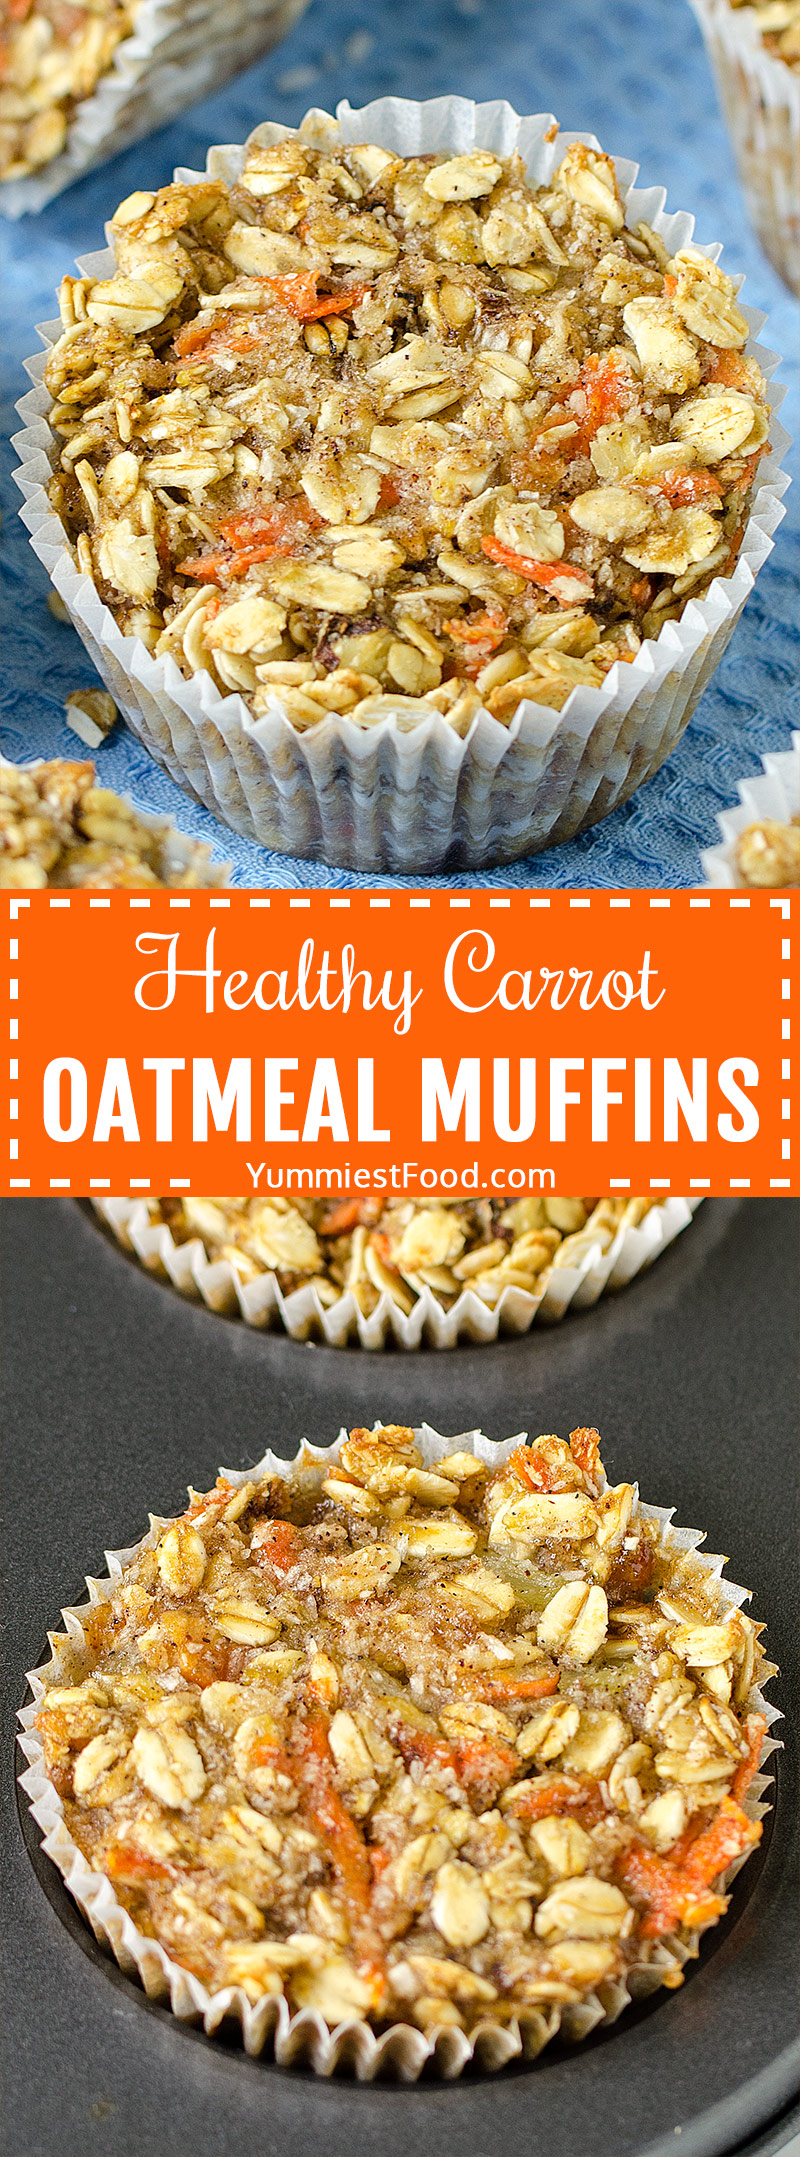 HEALTHY CARROT OATMEAL MUFFINS - healthy way to start your day